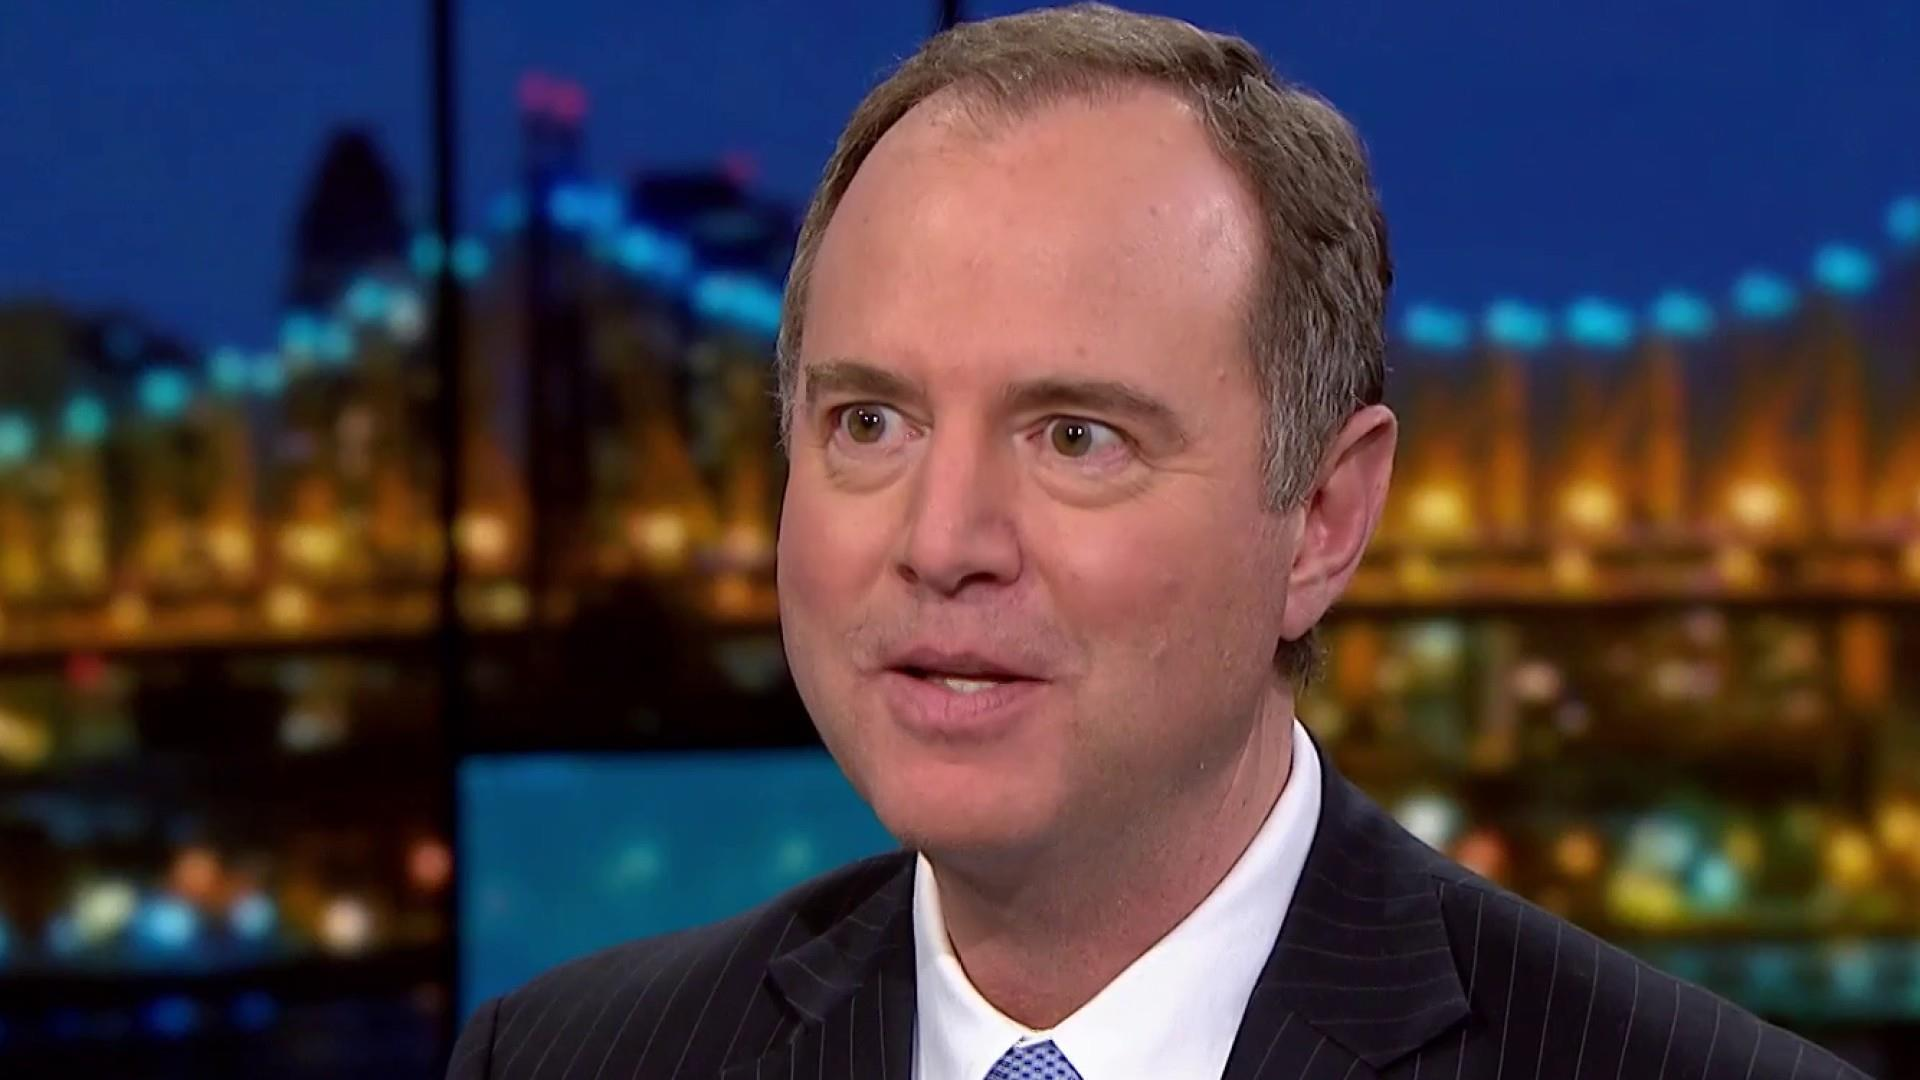 Schiff: Barr memo claim on need for obstruction decision 'flimsy'